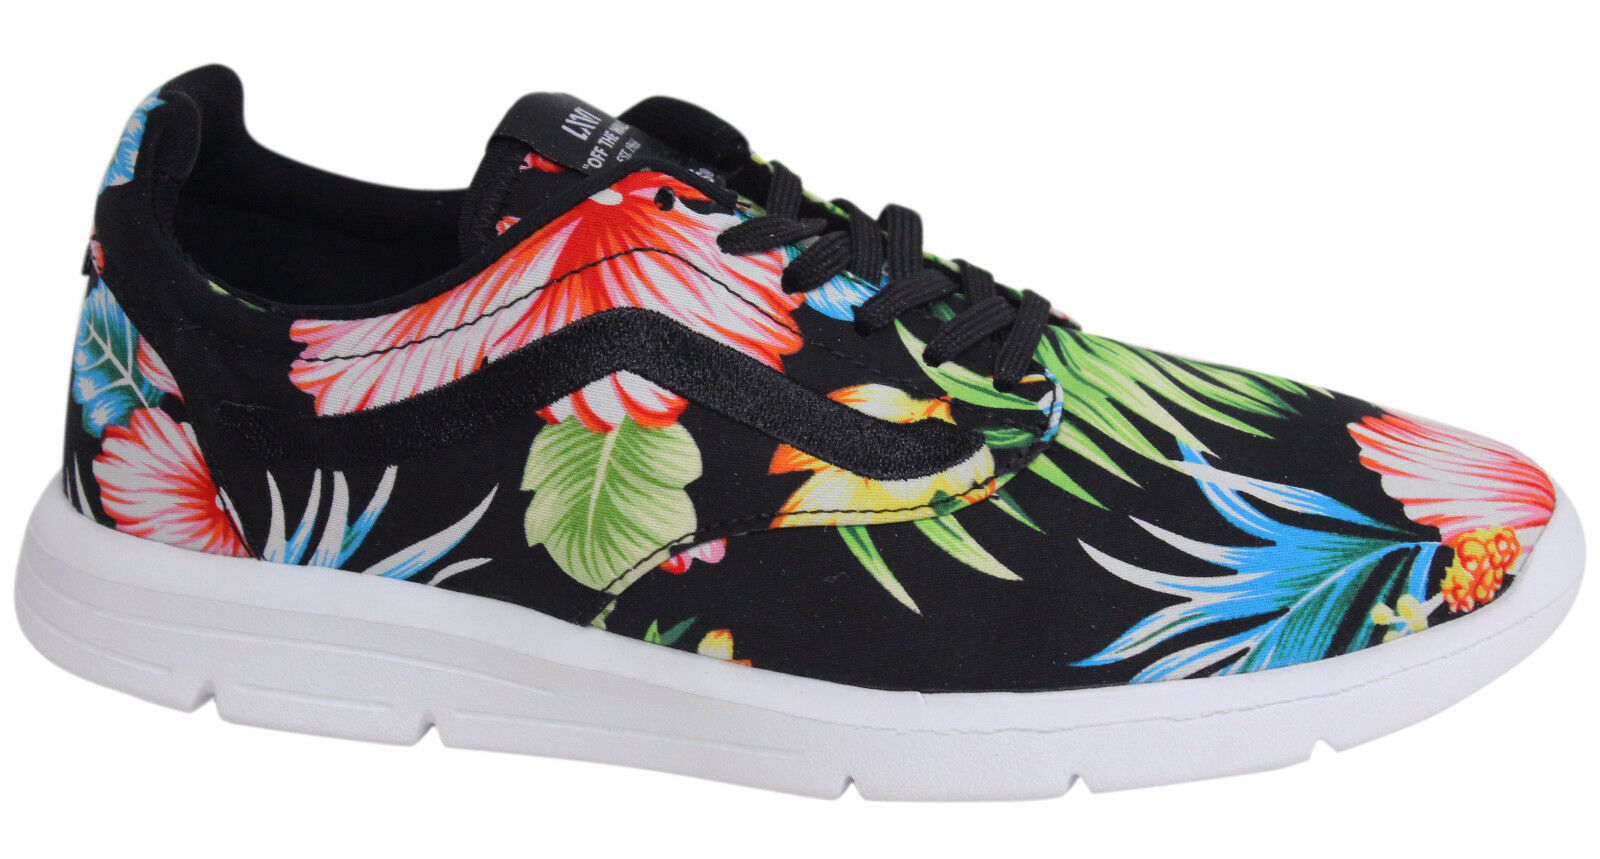 Vans Iso 1.5 Lace Up Mens Black Floral Patterned Trainers shoes XB8HEY D35